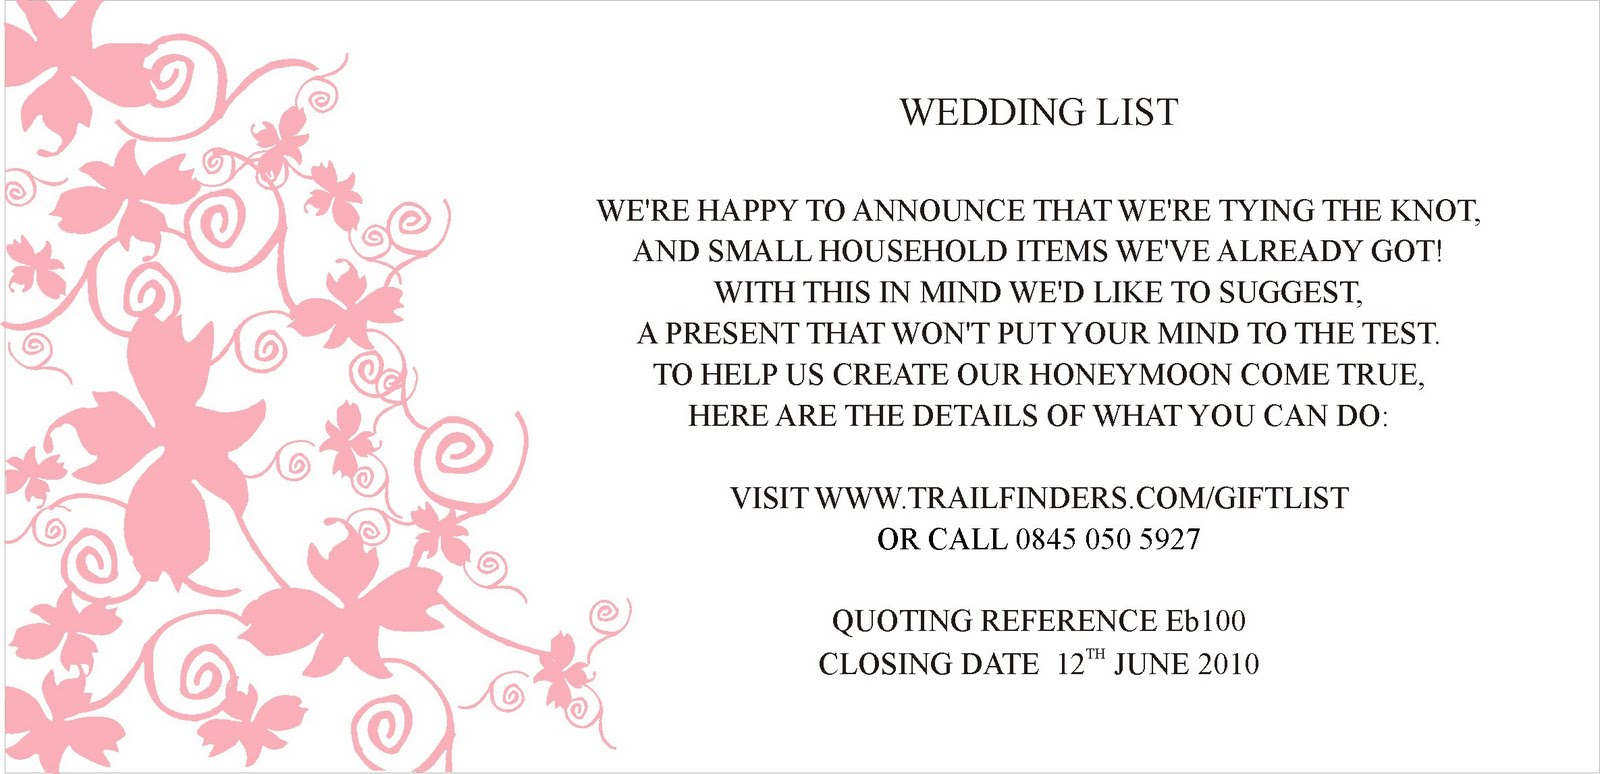 Wedding Gift List Wording Poems : wedding gift card serves a practical purpose, saving you from ten ...